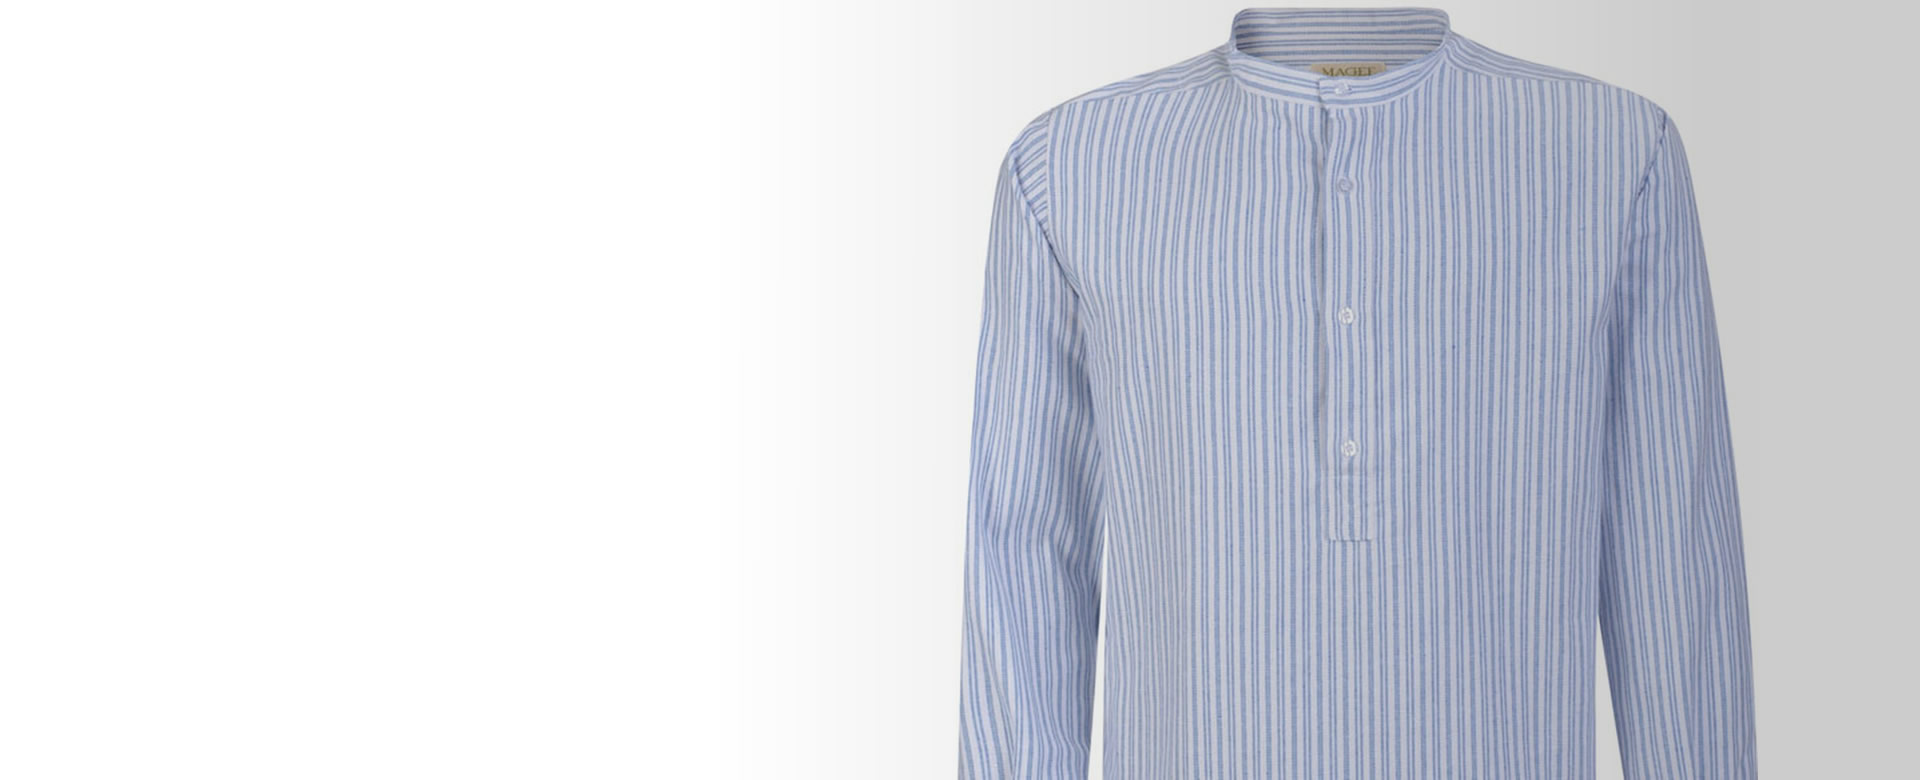 Men's Brushed Cotton Nightwear by Magee